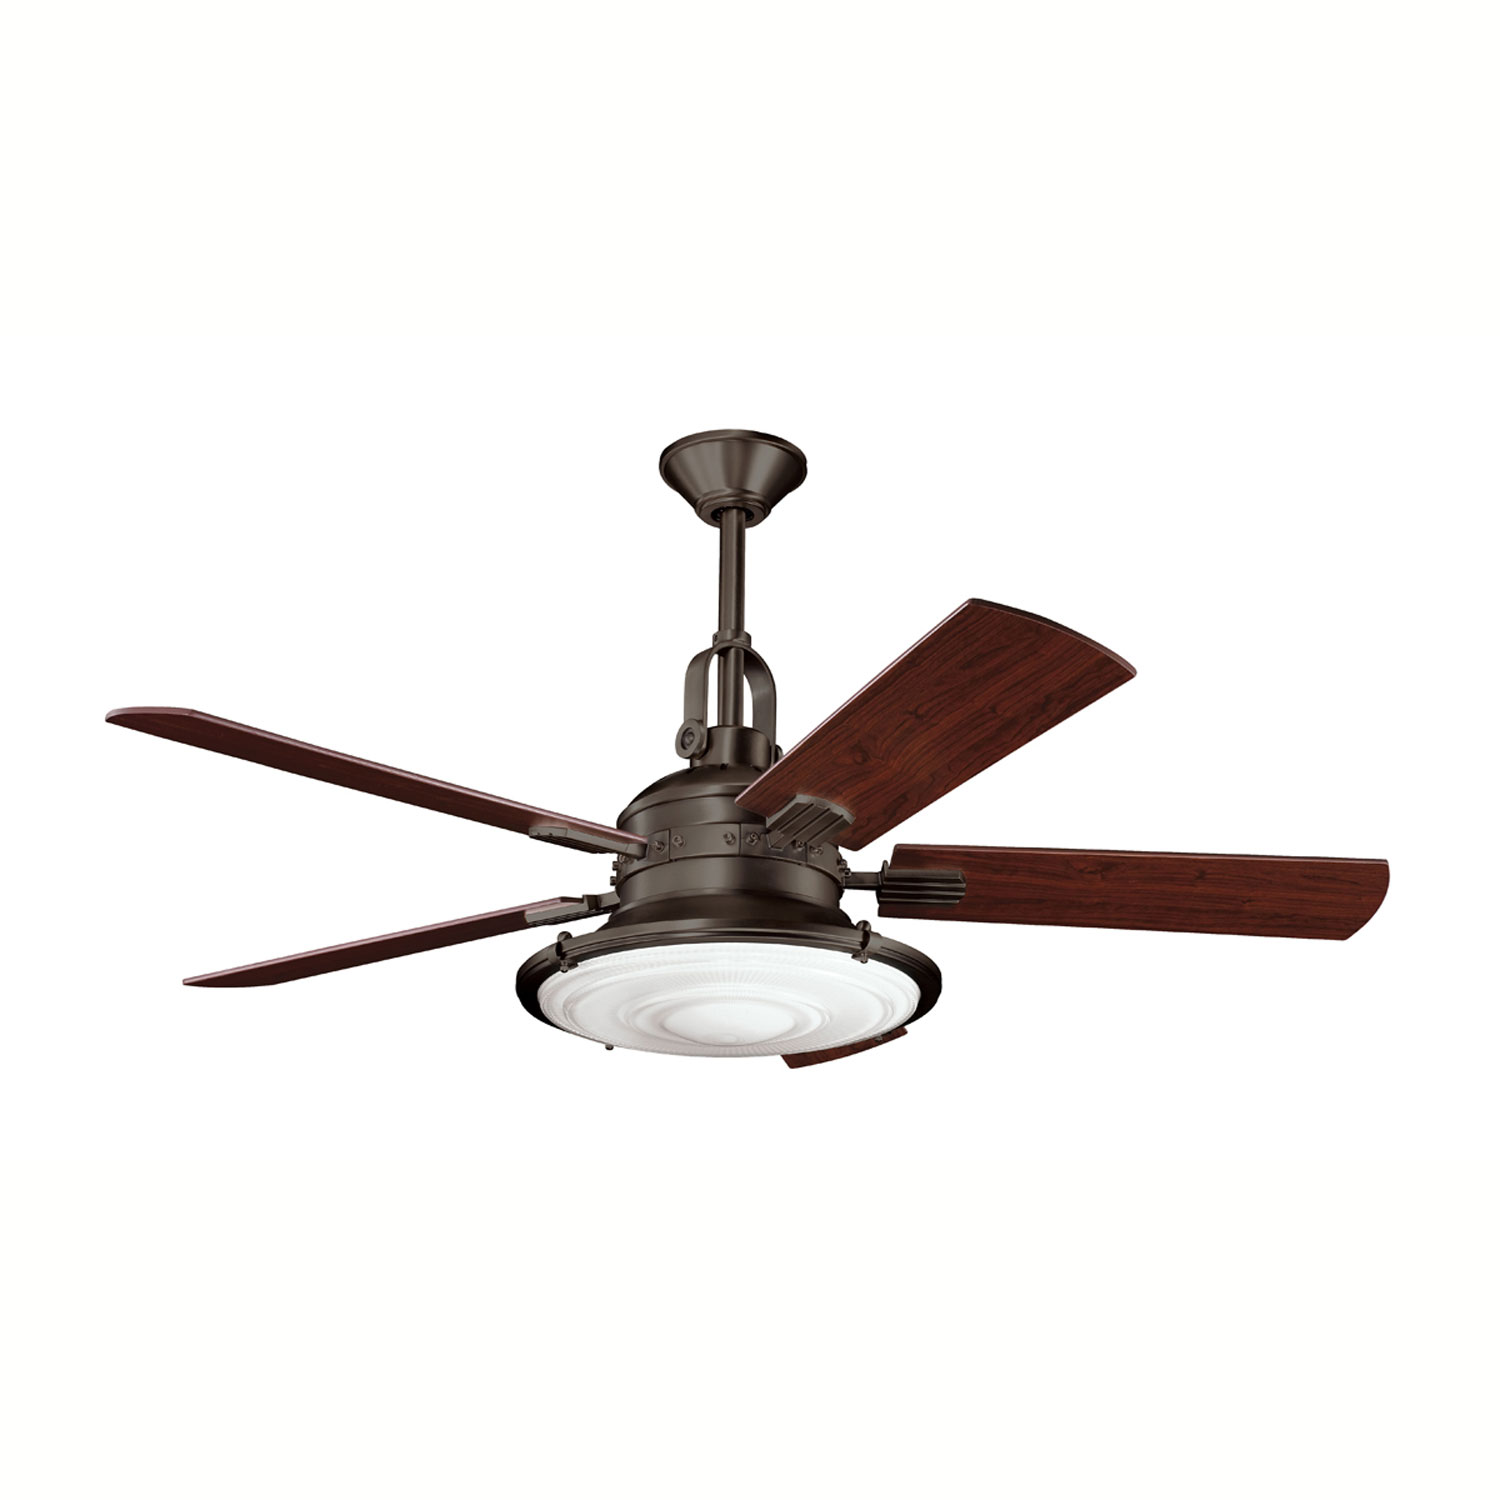 52 inchCeiling Fan from the Kittery Point collection by Kichler 300020OZ